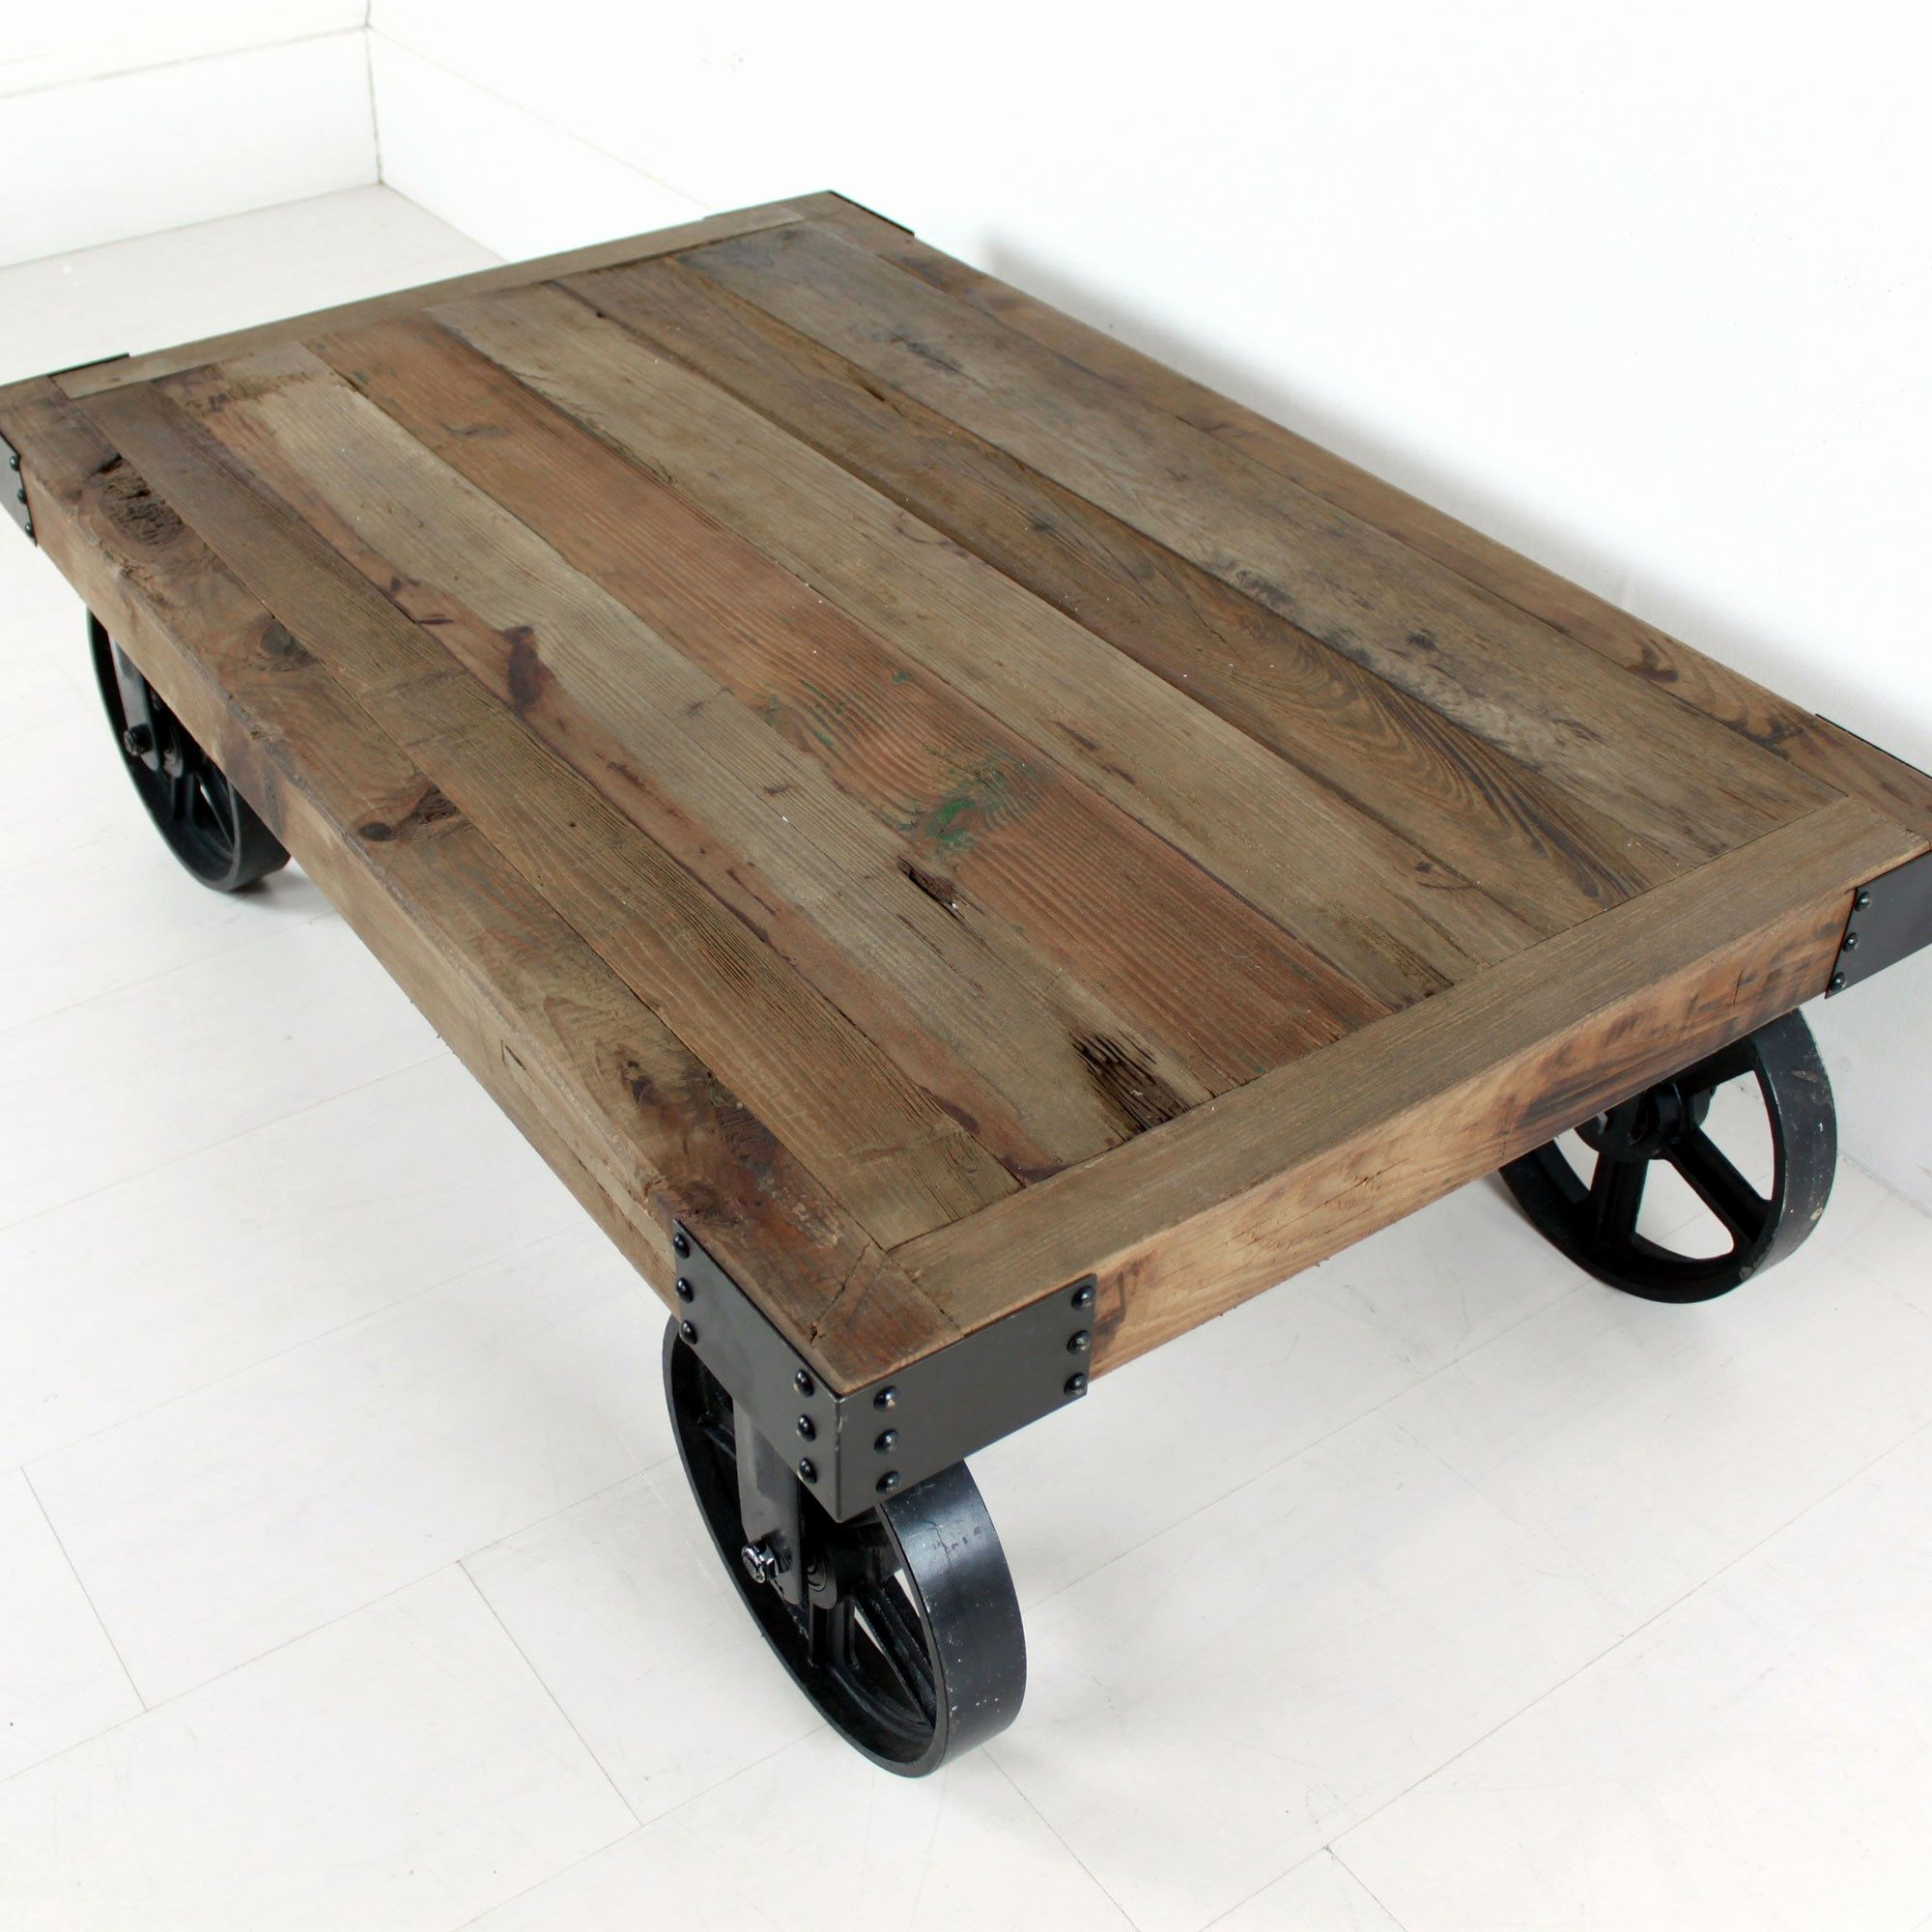 Small Coffee Table On Wheels Download Related Image Of Rustic Glass Coffee Table Luxu In 2020 Coffee Table Wood Wood Coffee Table Rustic Rustic Industrial Coffee Table